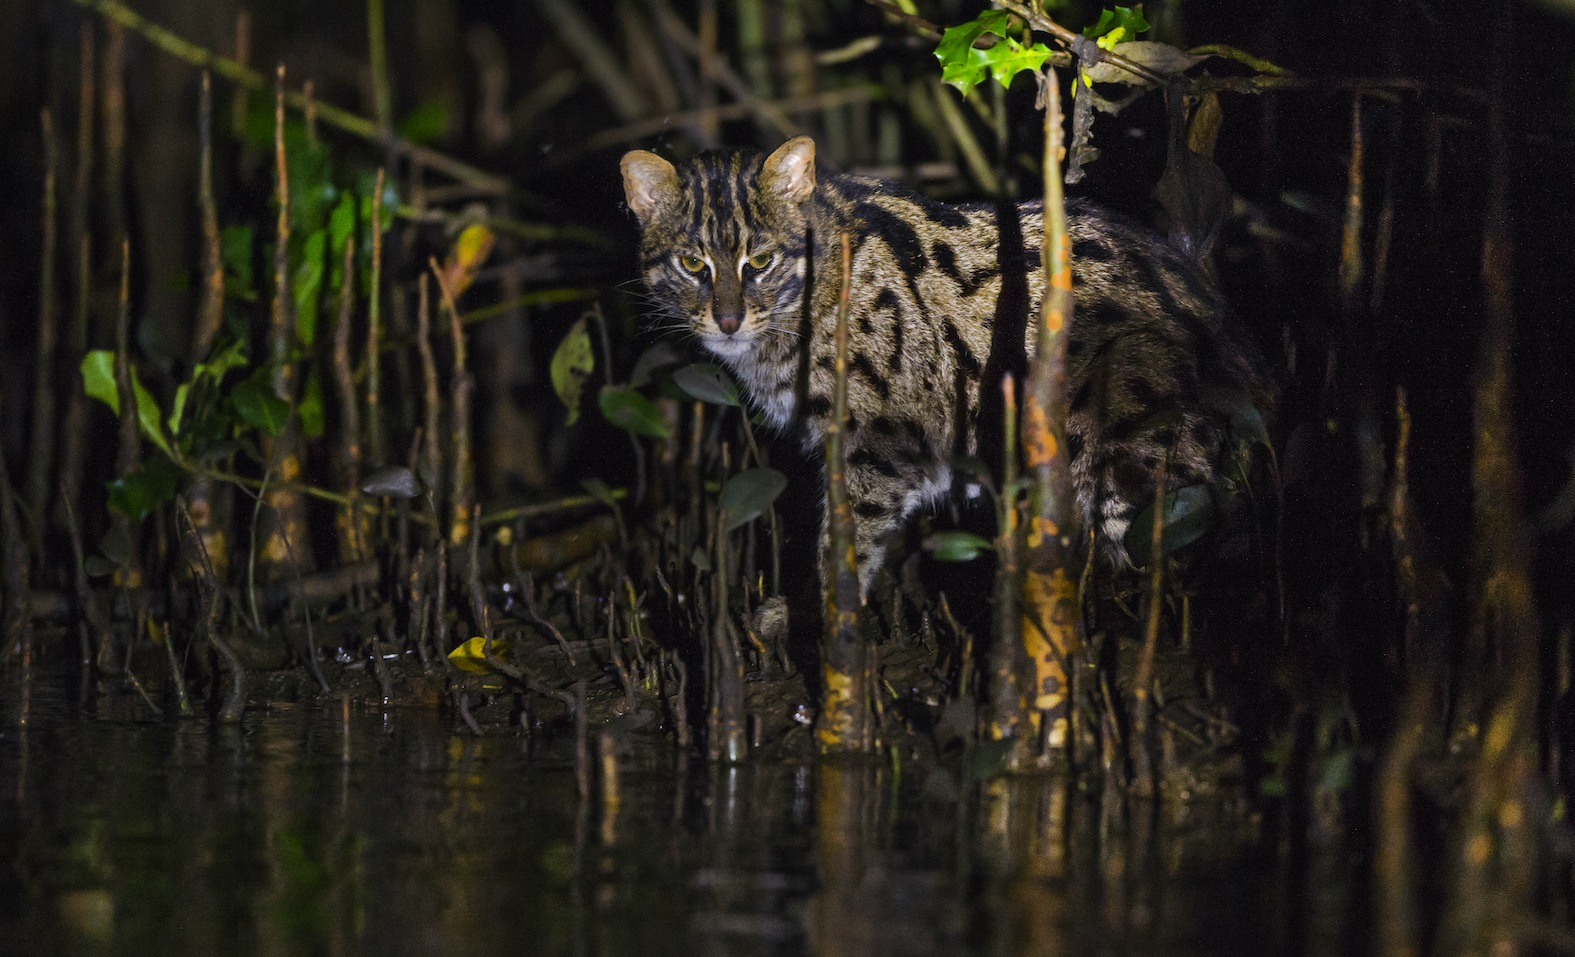 Uniquely adapted to a semi-aquatic life, the fishing cat has a dense layer of packed coat of hair against the skin which prevents water from touching the skin, keeping it warm even in chilly water.